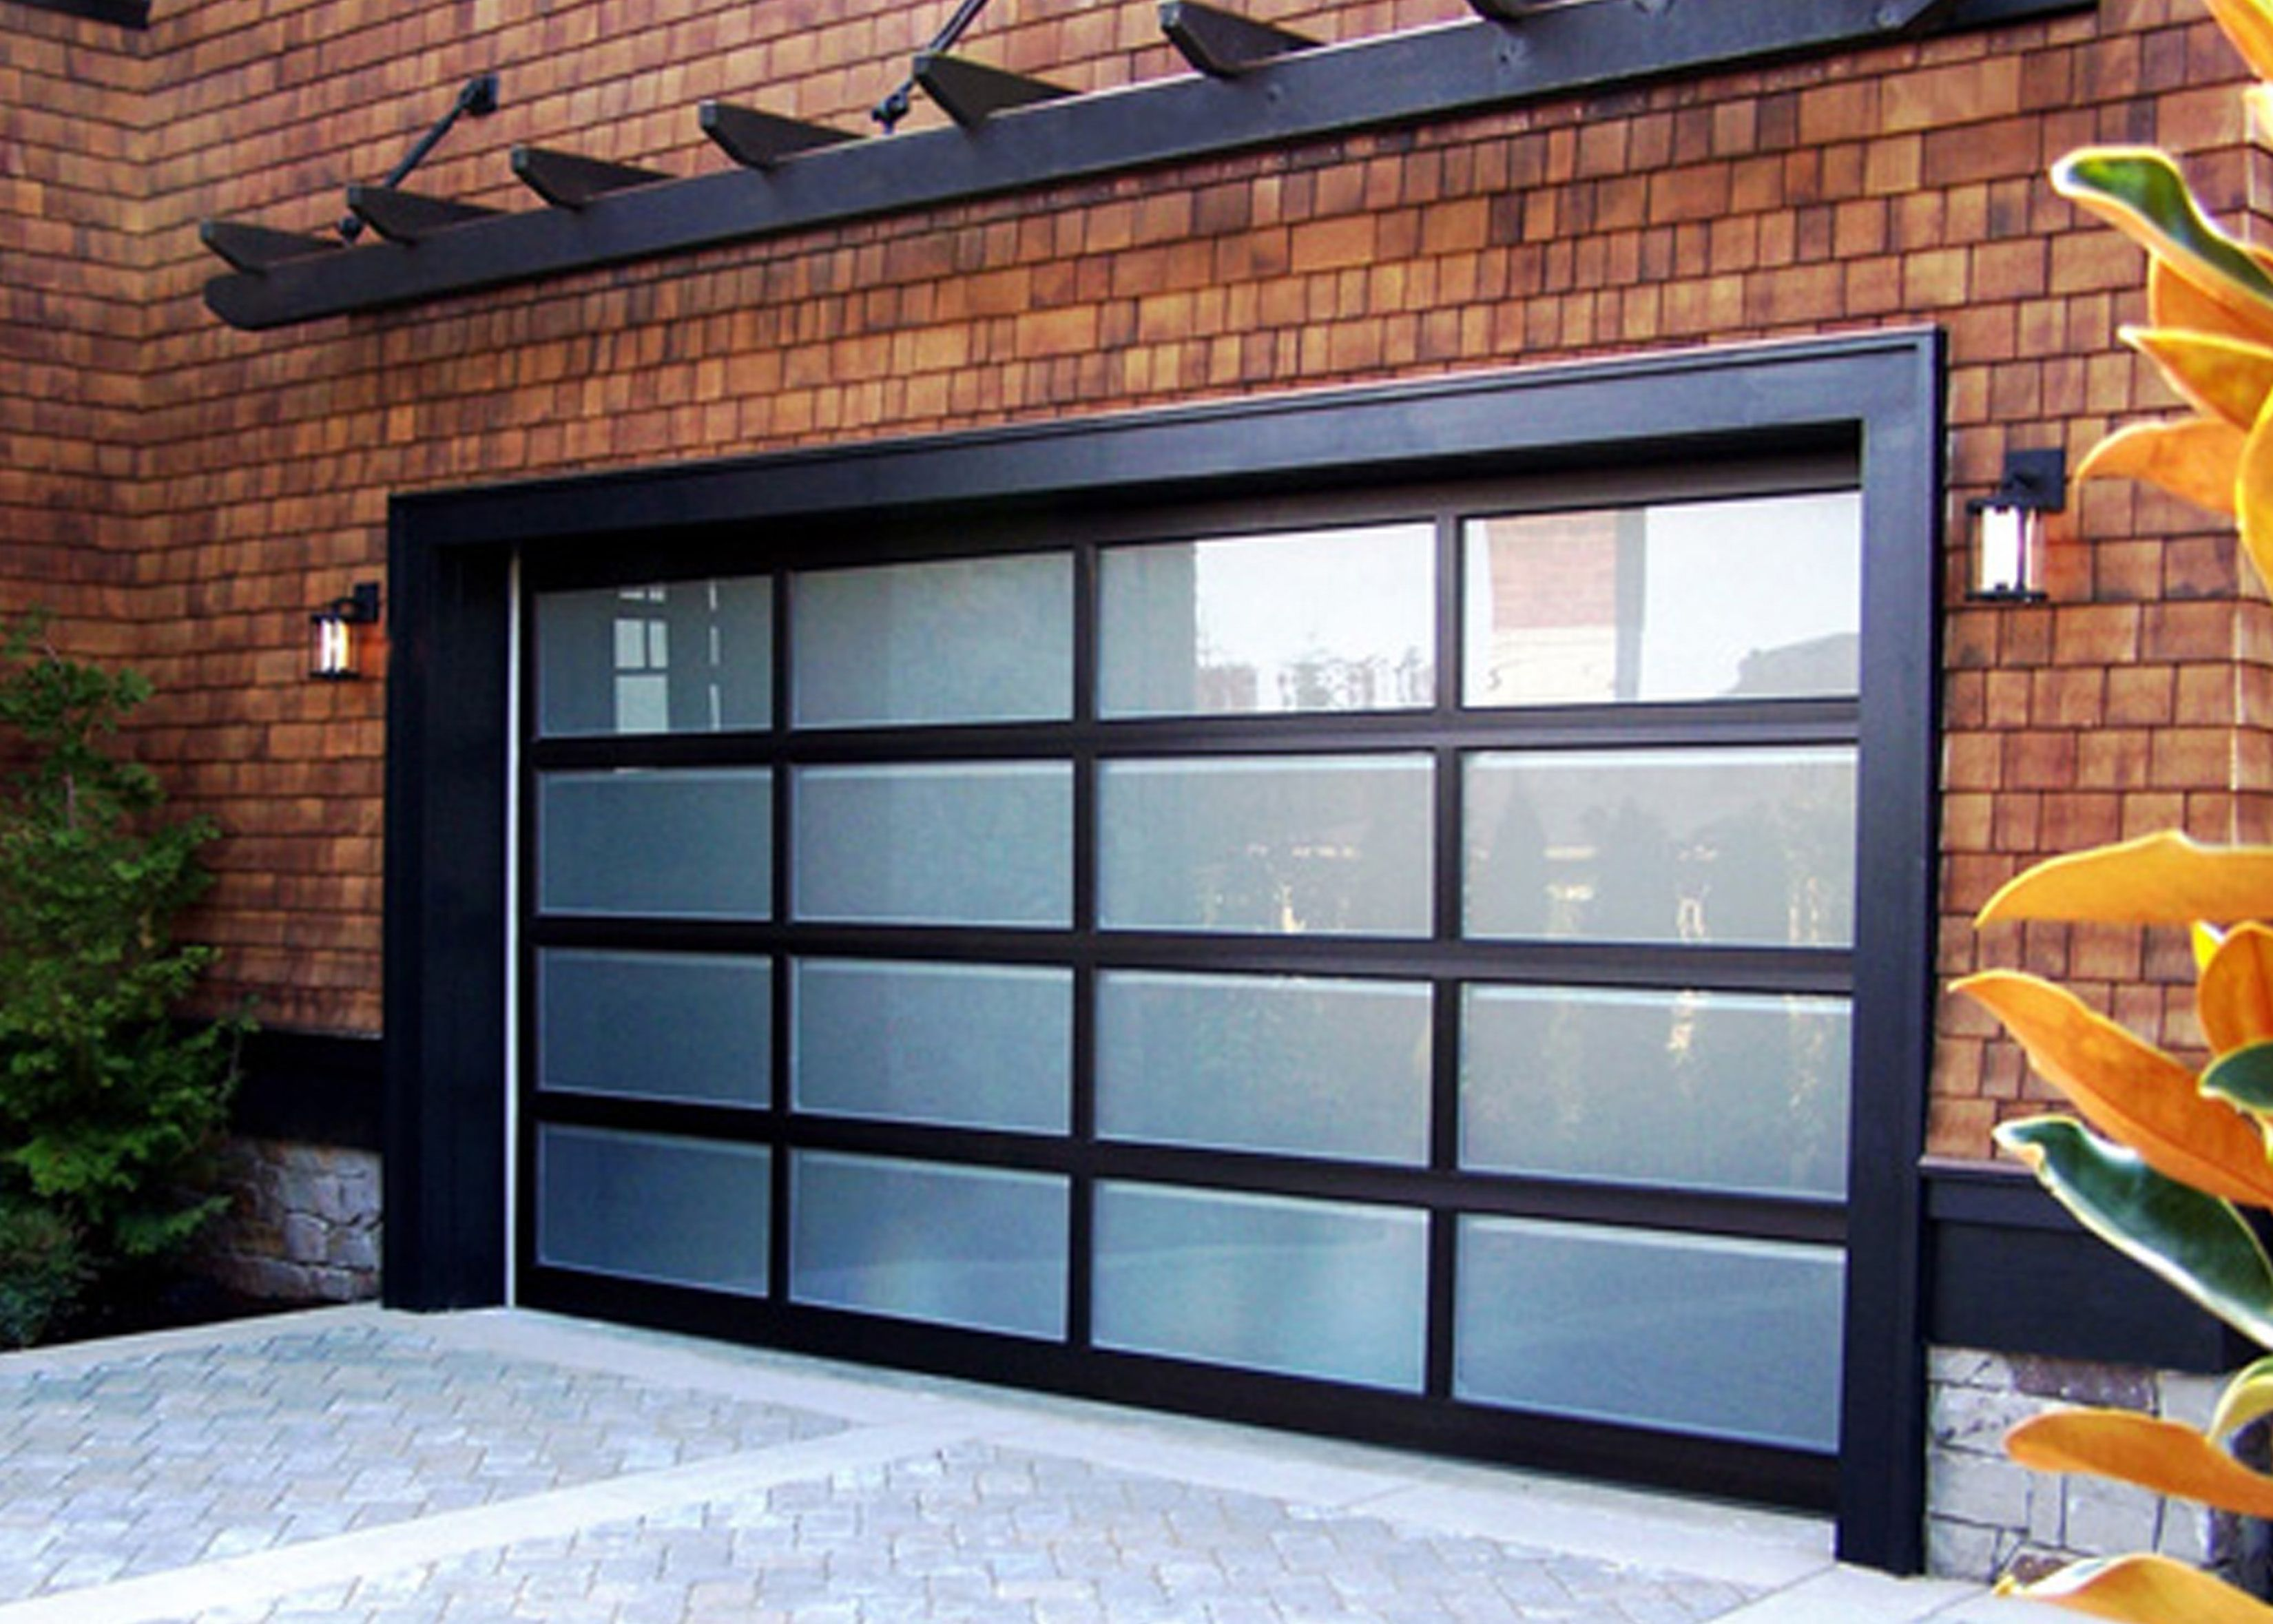 Door Minimalist Black Glass Garage With Man Doors For Brick Wall Home Wonderful Outdoor Living Space Garage Doors Garage Door Sizes Glass Garage Door